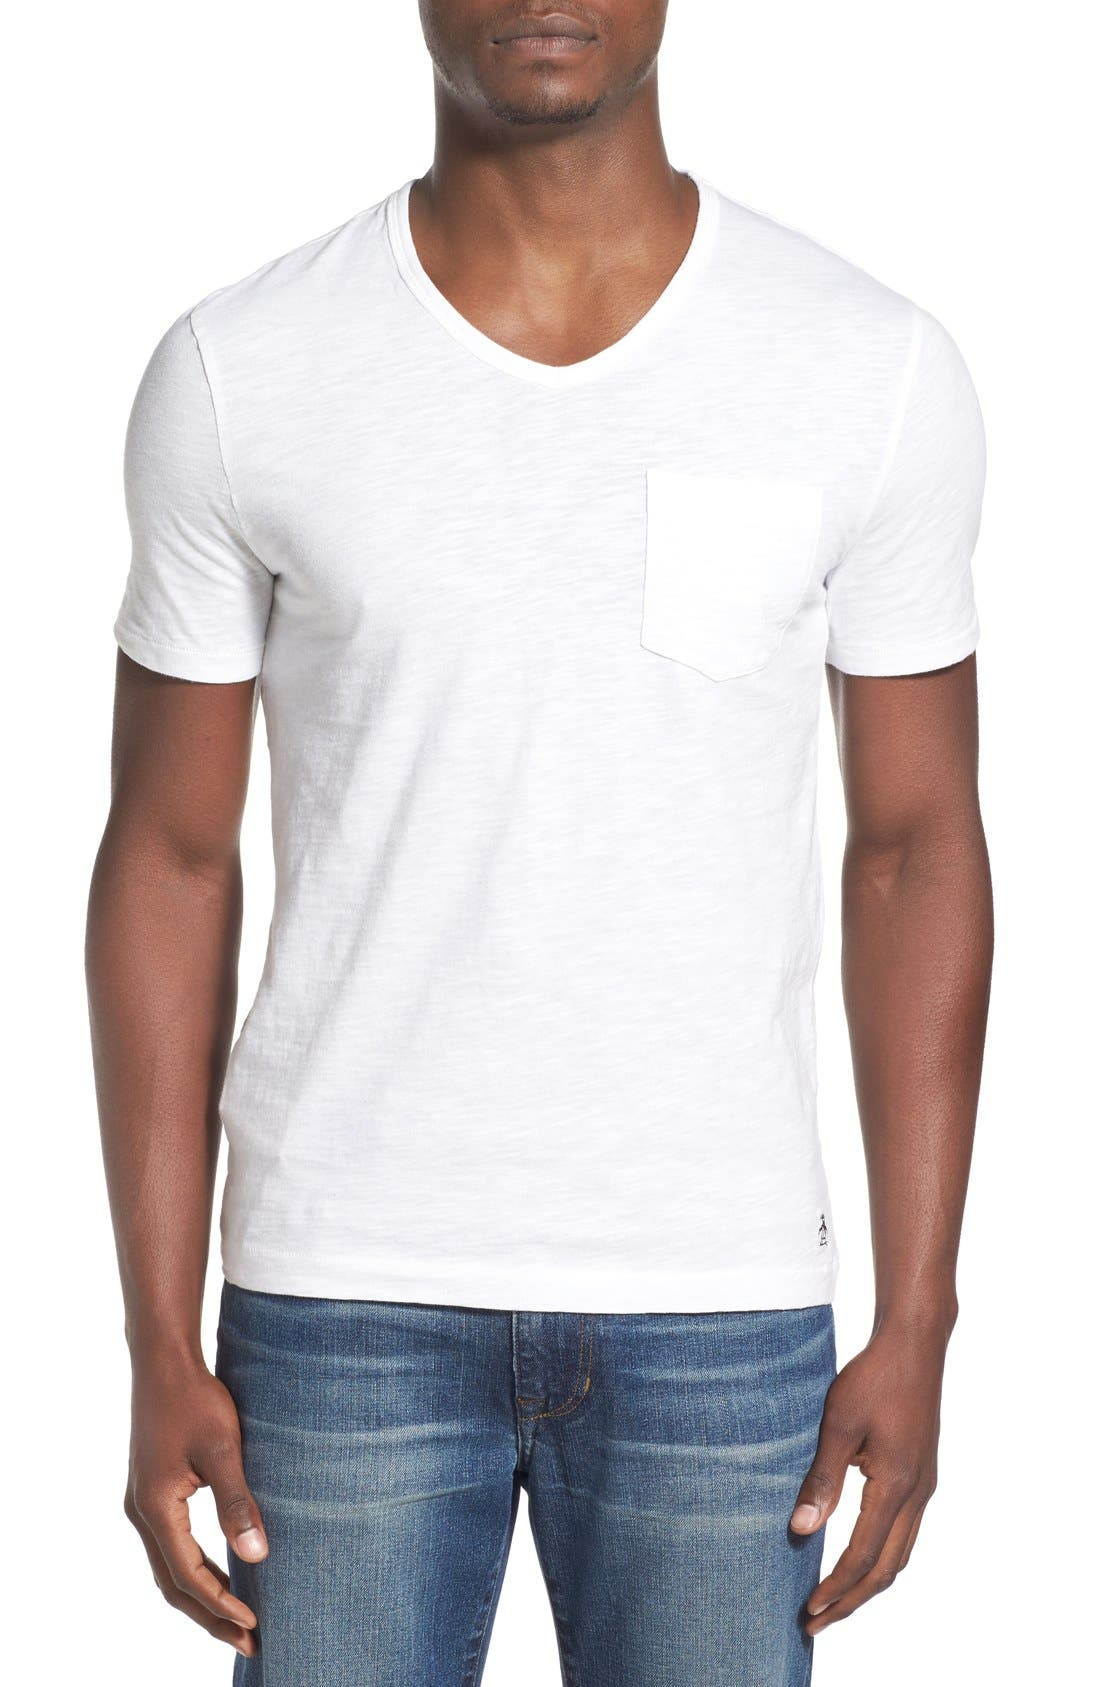 Main Image - Original Penguin 'Bing' V-Neck Pocket T-Shirt